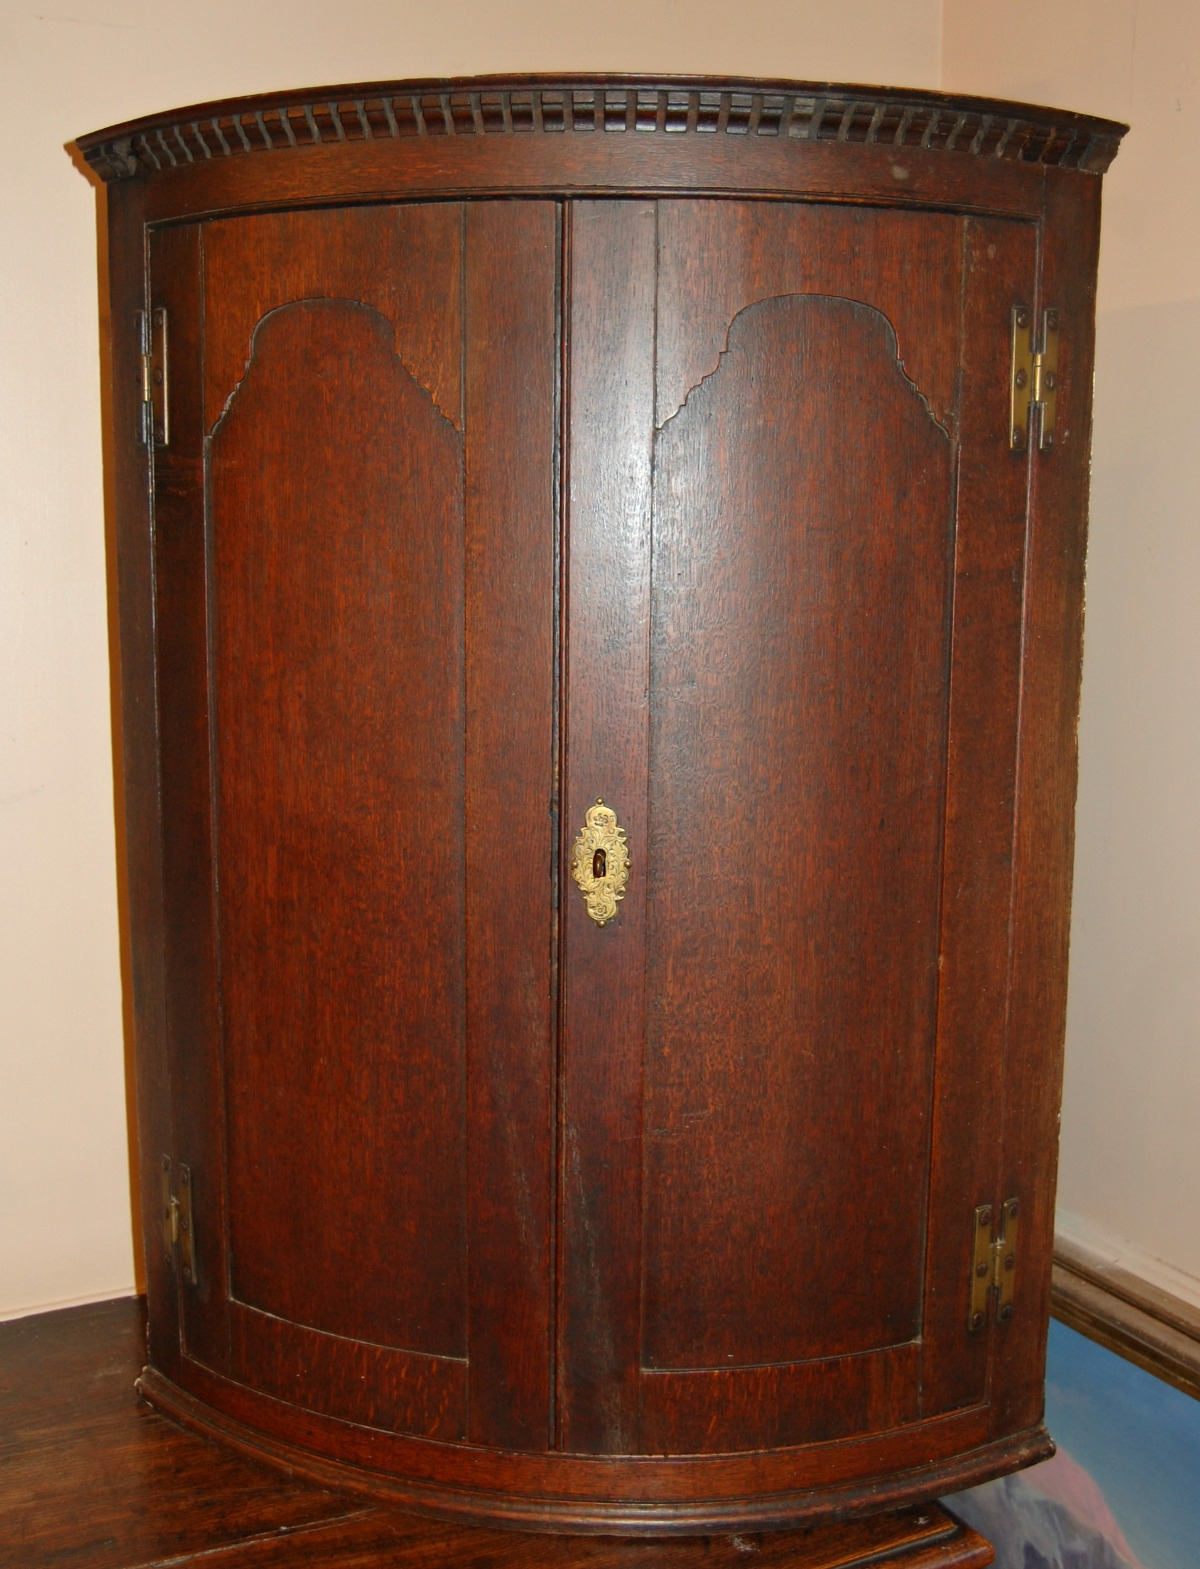 edwardian hannah cabinets cases image for antique manning materials cupboards unlimited and salvaged by cabinet cupboard